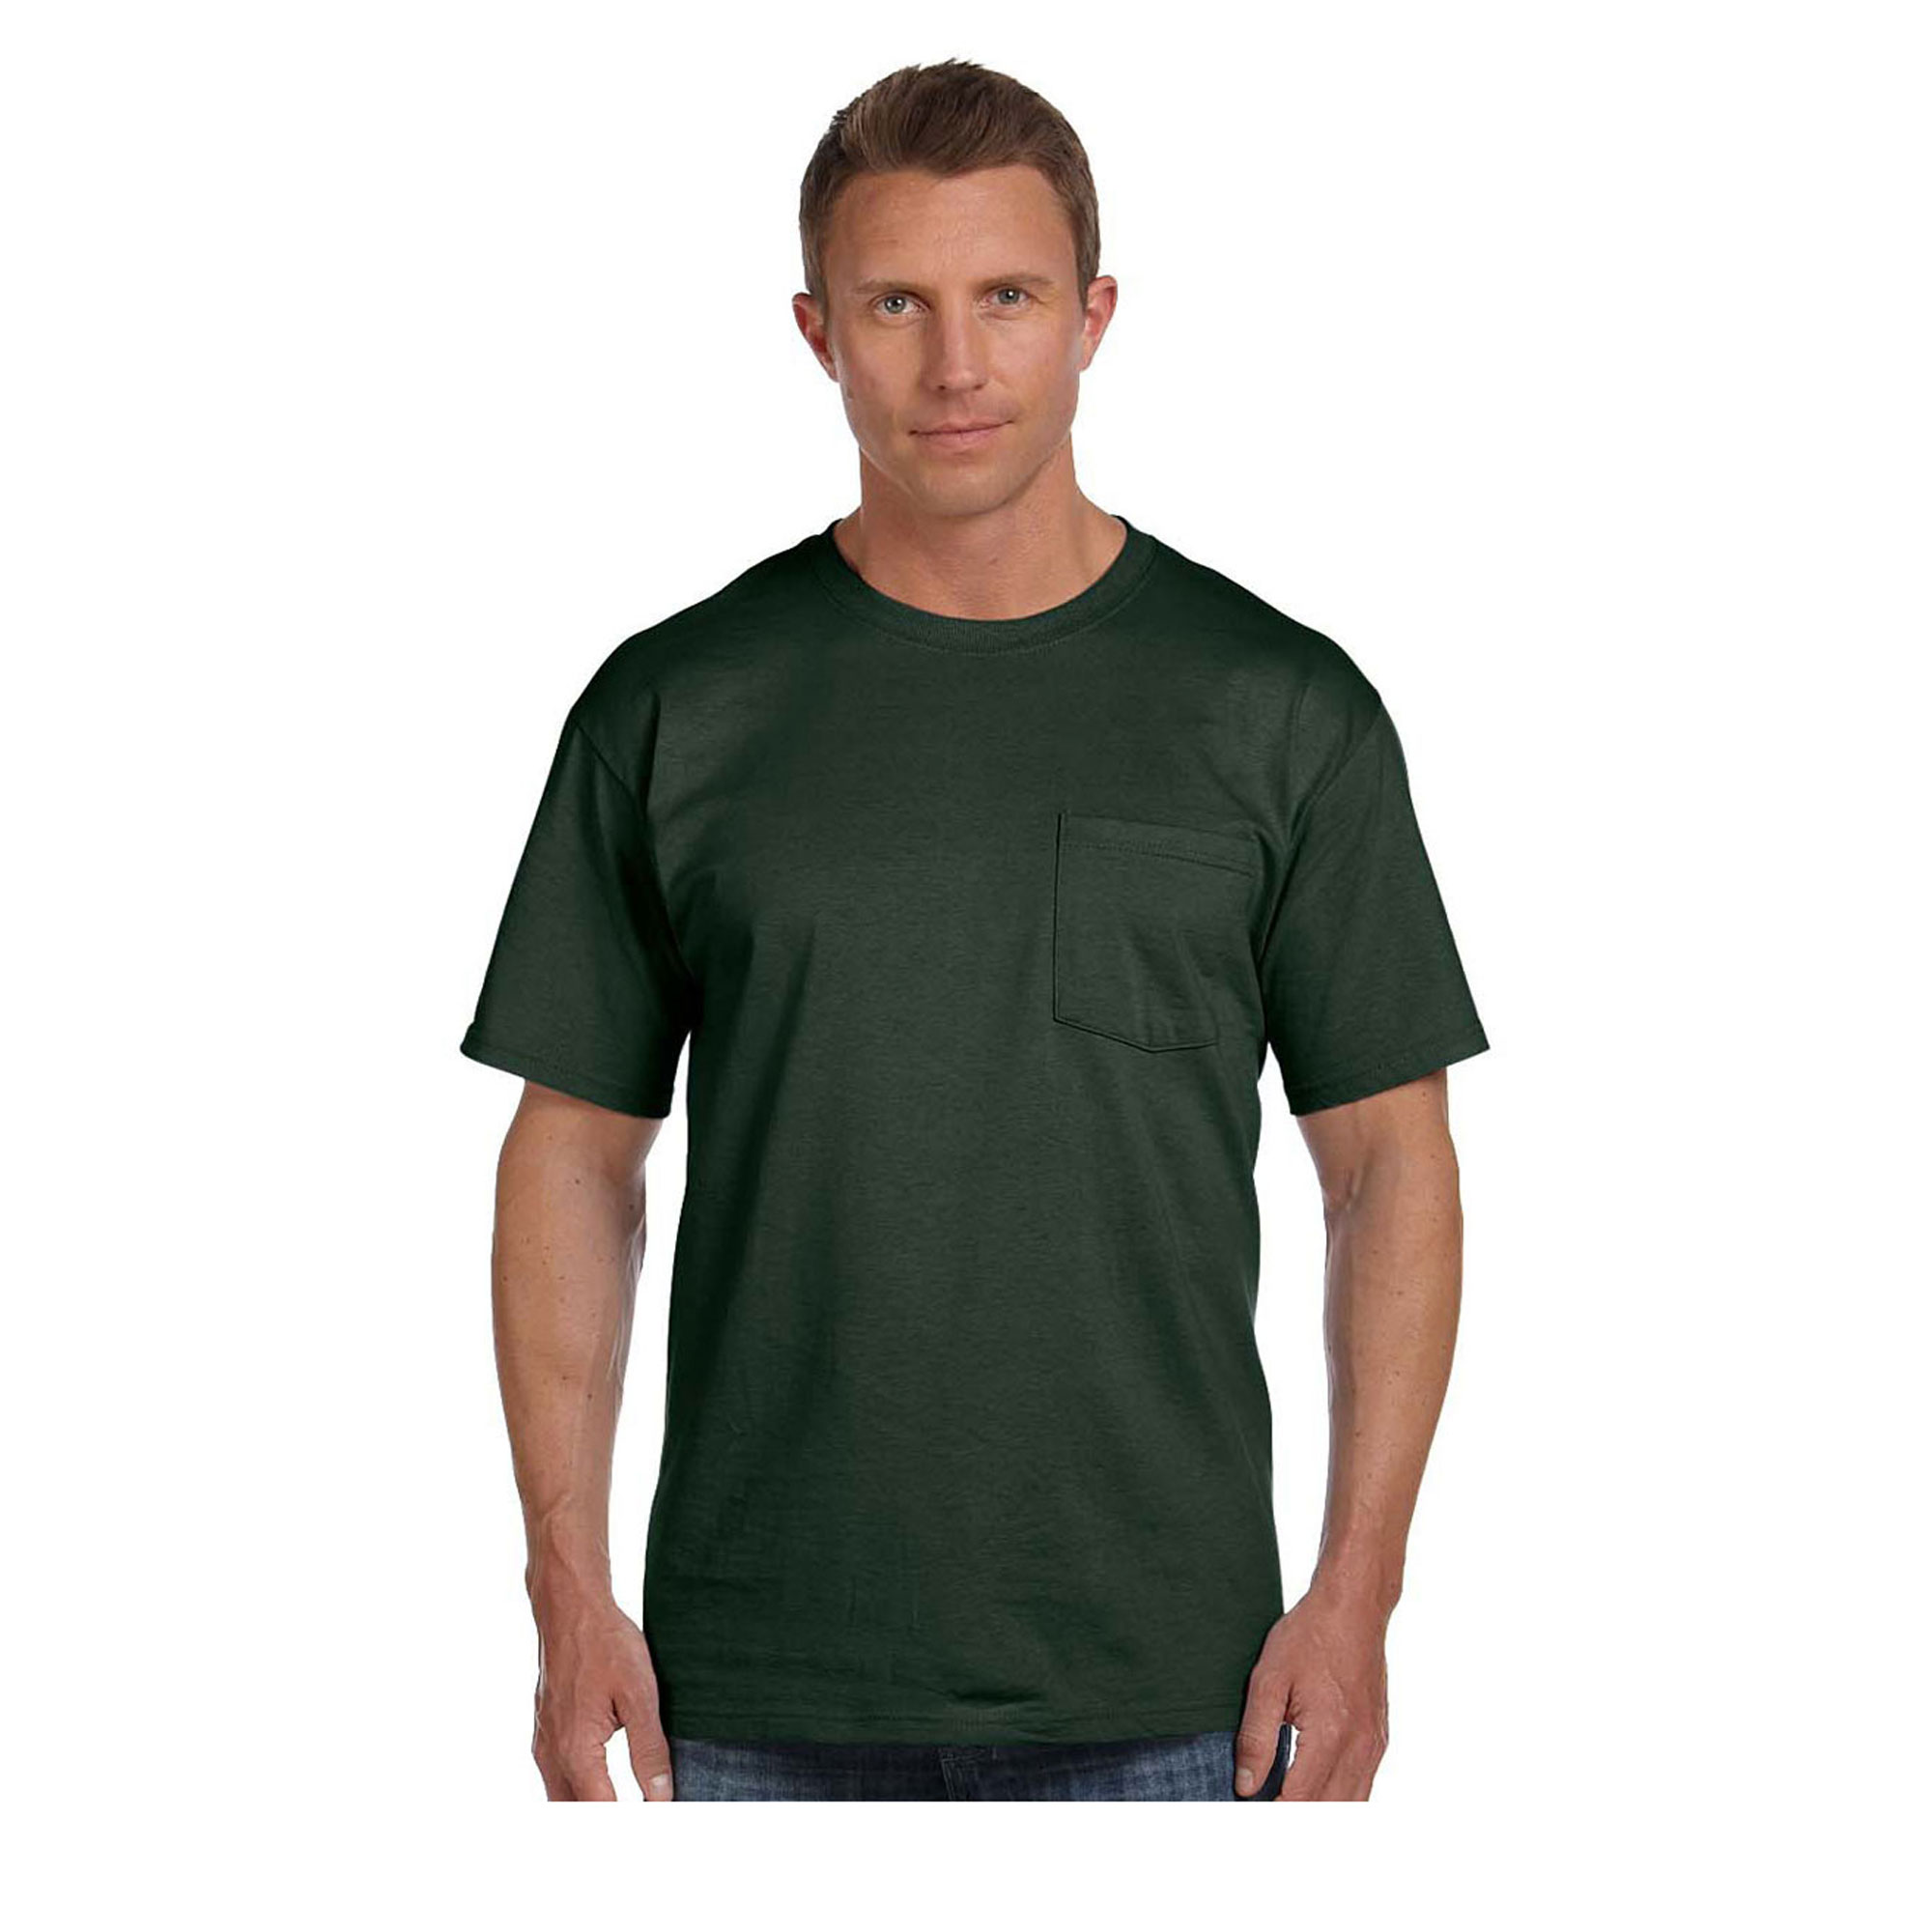 Fruit of the Loom Men's Tight Woven Cotton Pocket T-Shirt, Style 3930P